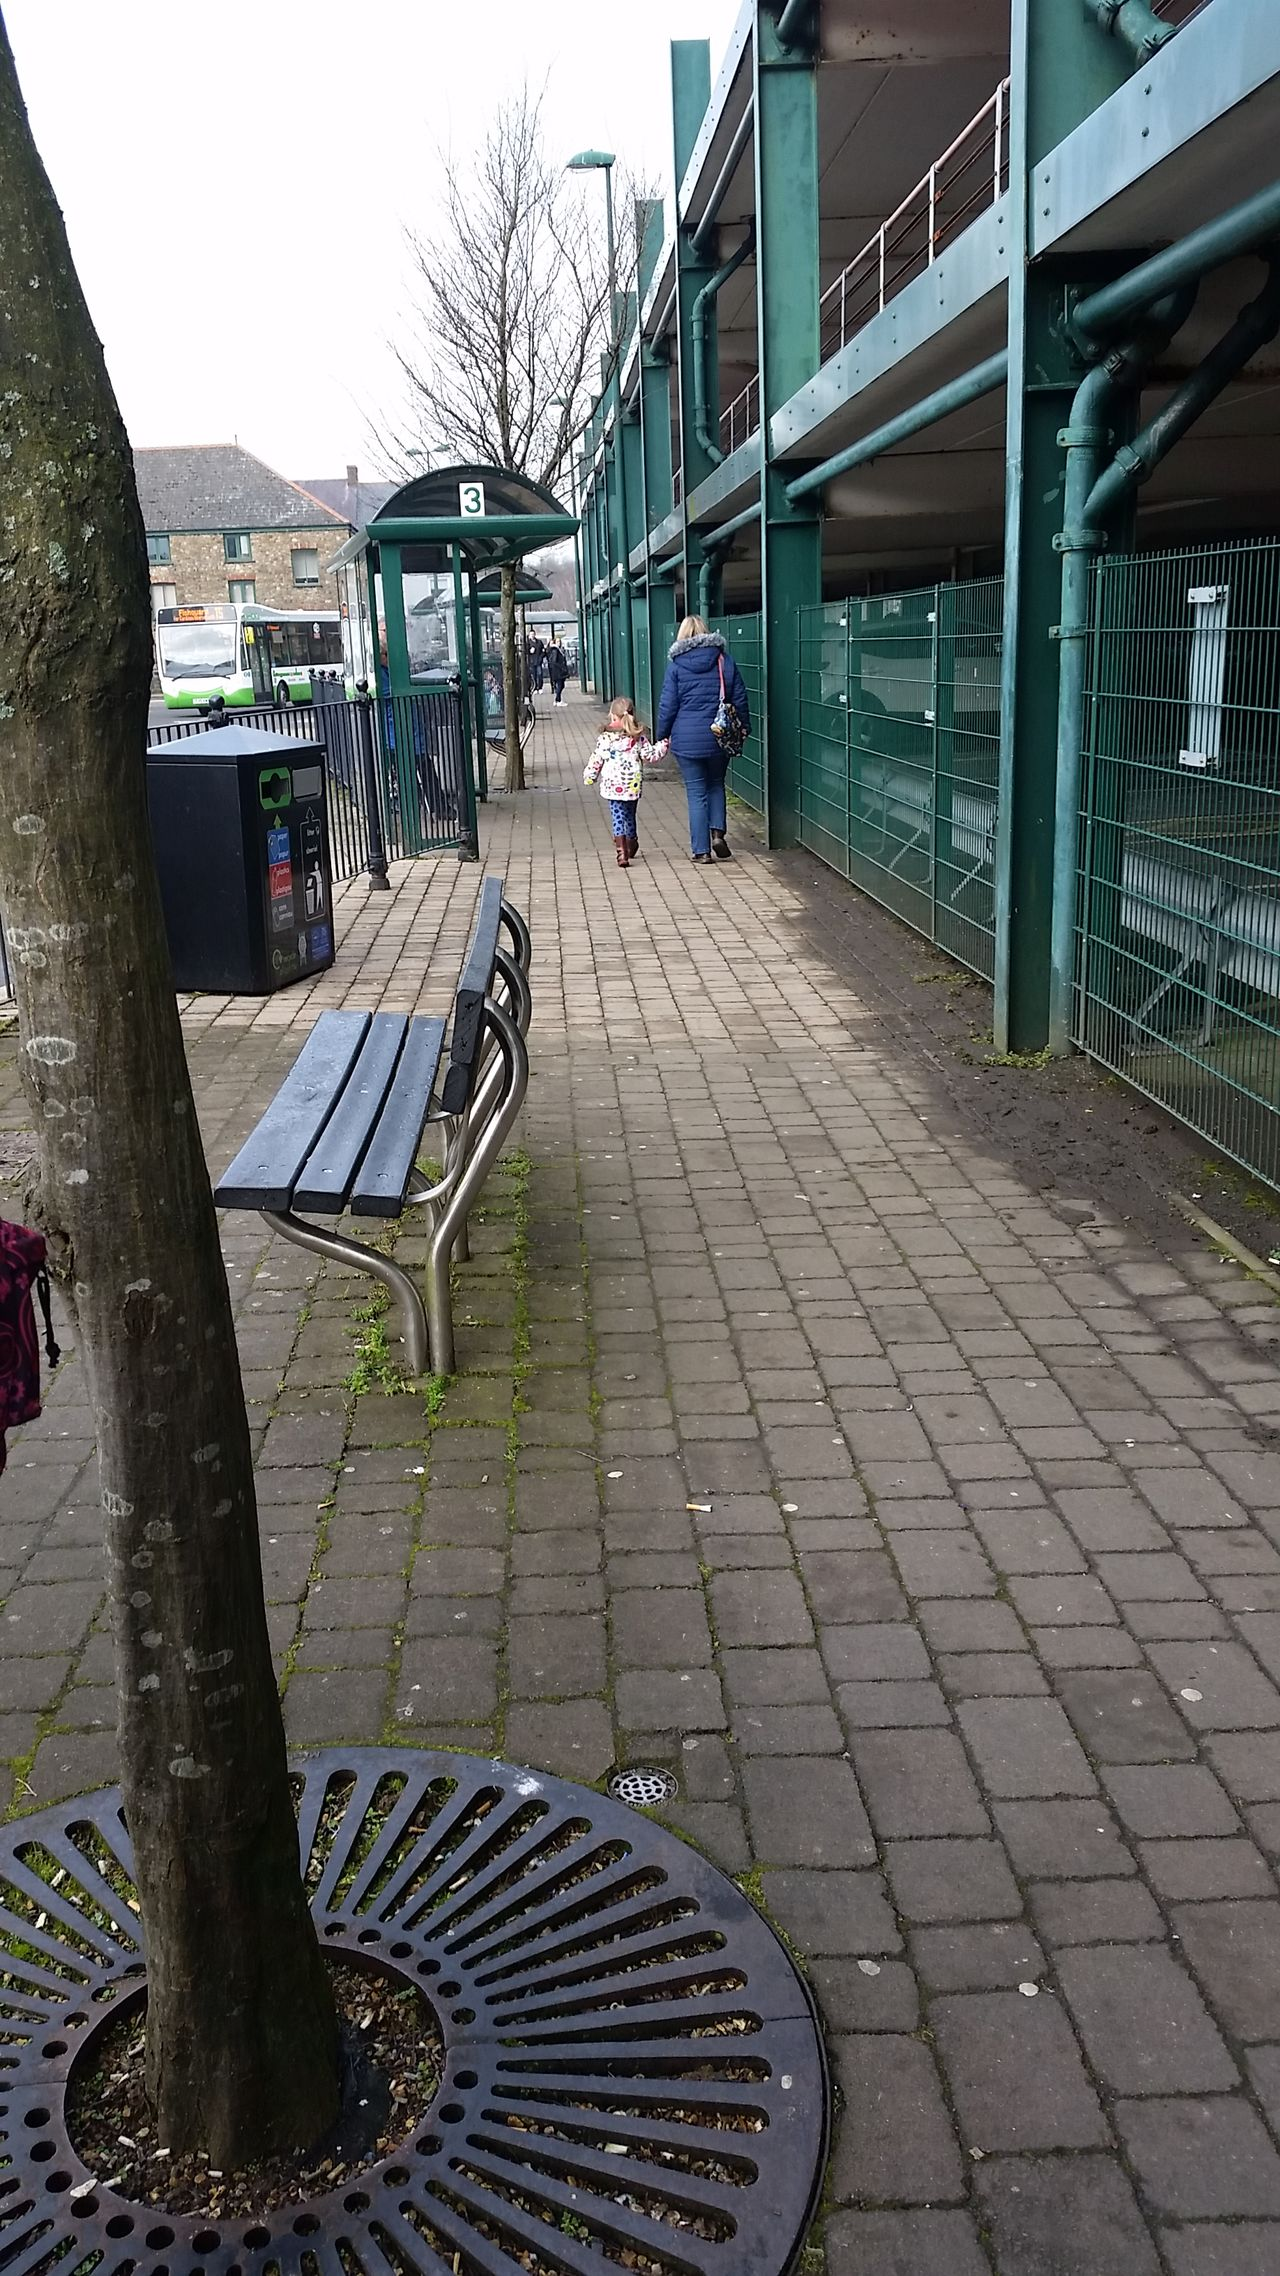 Built Structure Outdoors Real People Wales Bus Station Haverfordwest Architecture Building Exterior Cobblestone The Way Forward City Day Sky One Person People Human Body Part Adult Adults Only